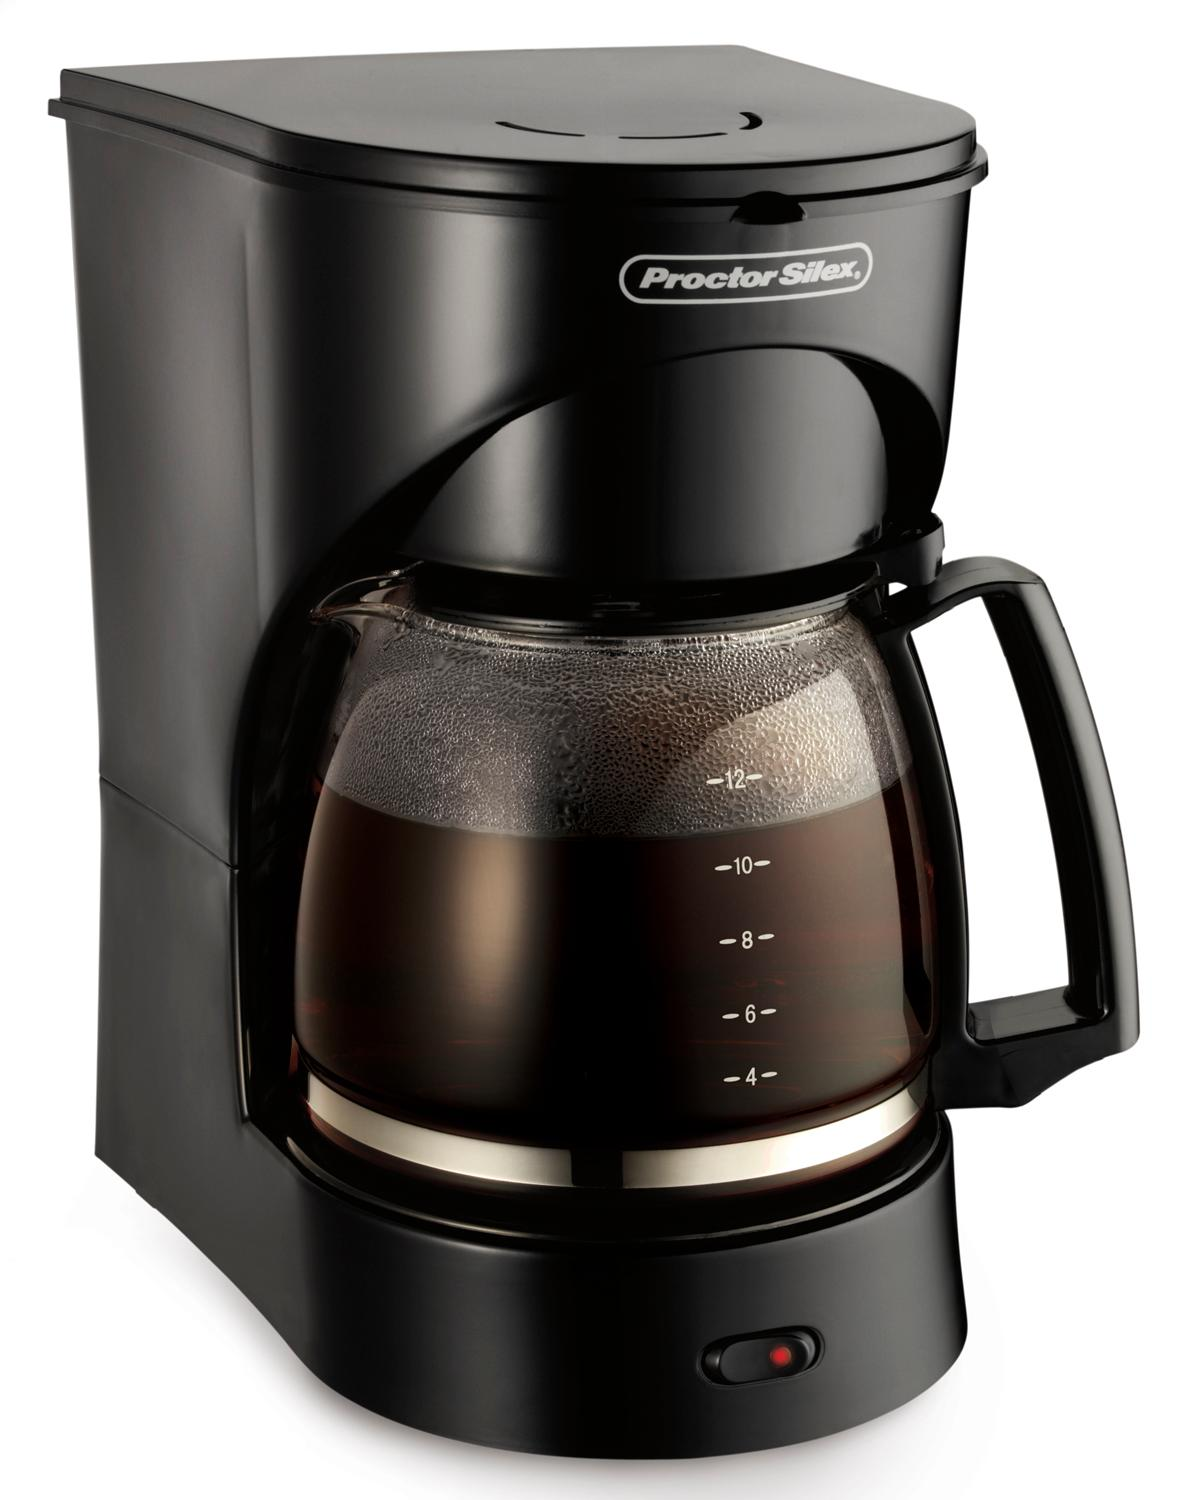 Proctor silex 12 cup coffee maker black Coffee maker brands